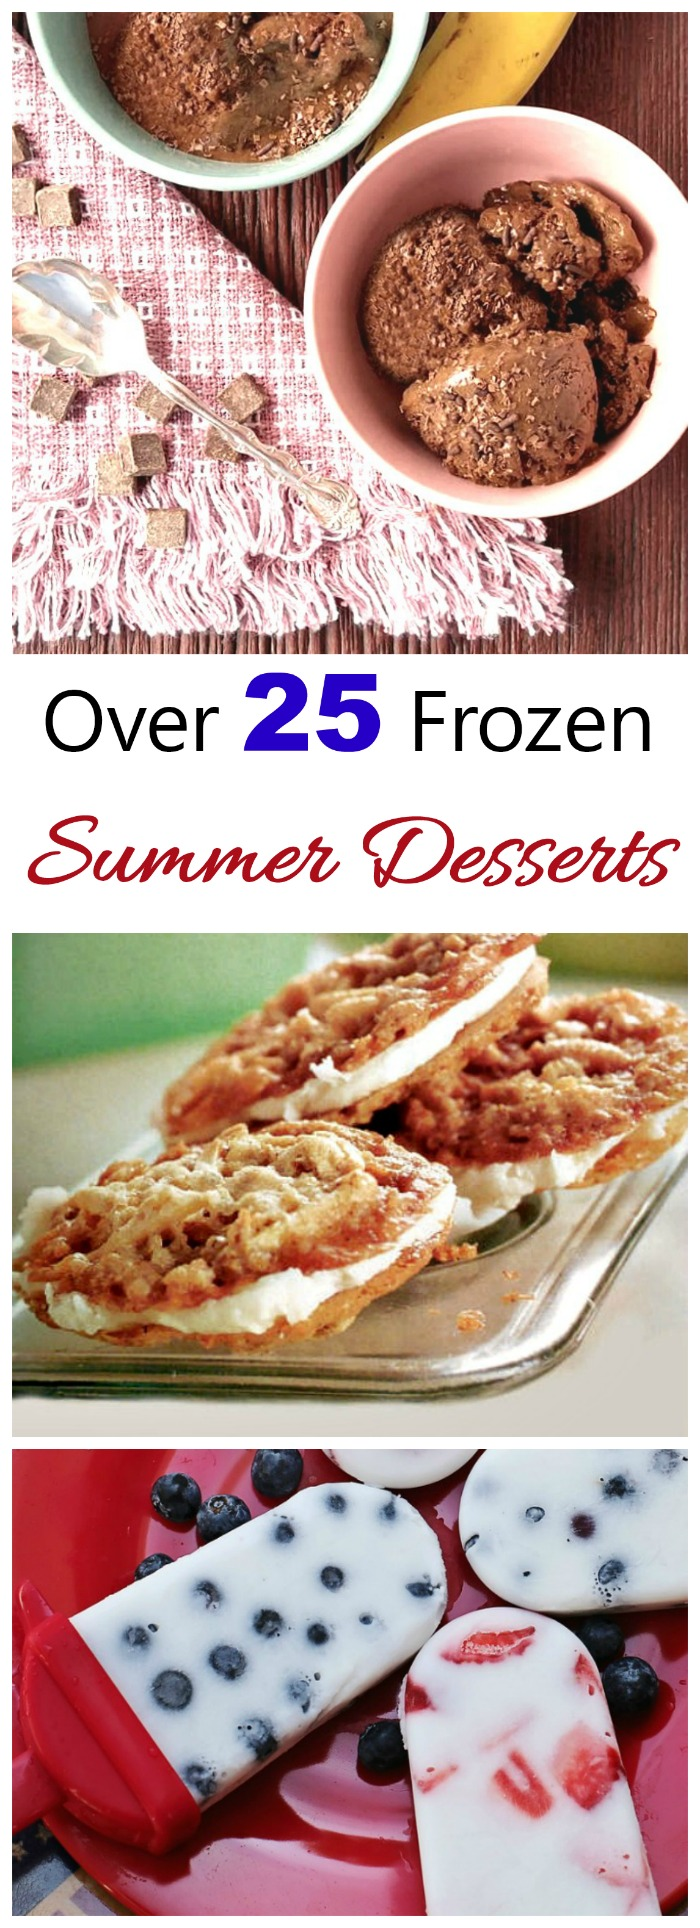 These cold summer desserts are the perfect sweet treat ending to a meal when the temps are high.